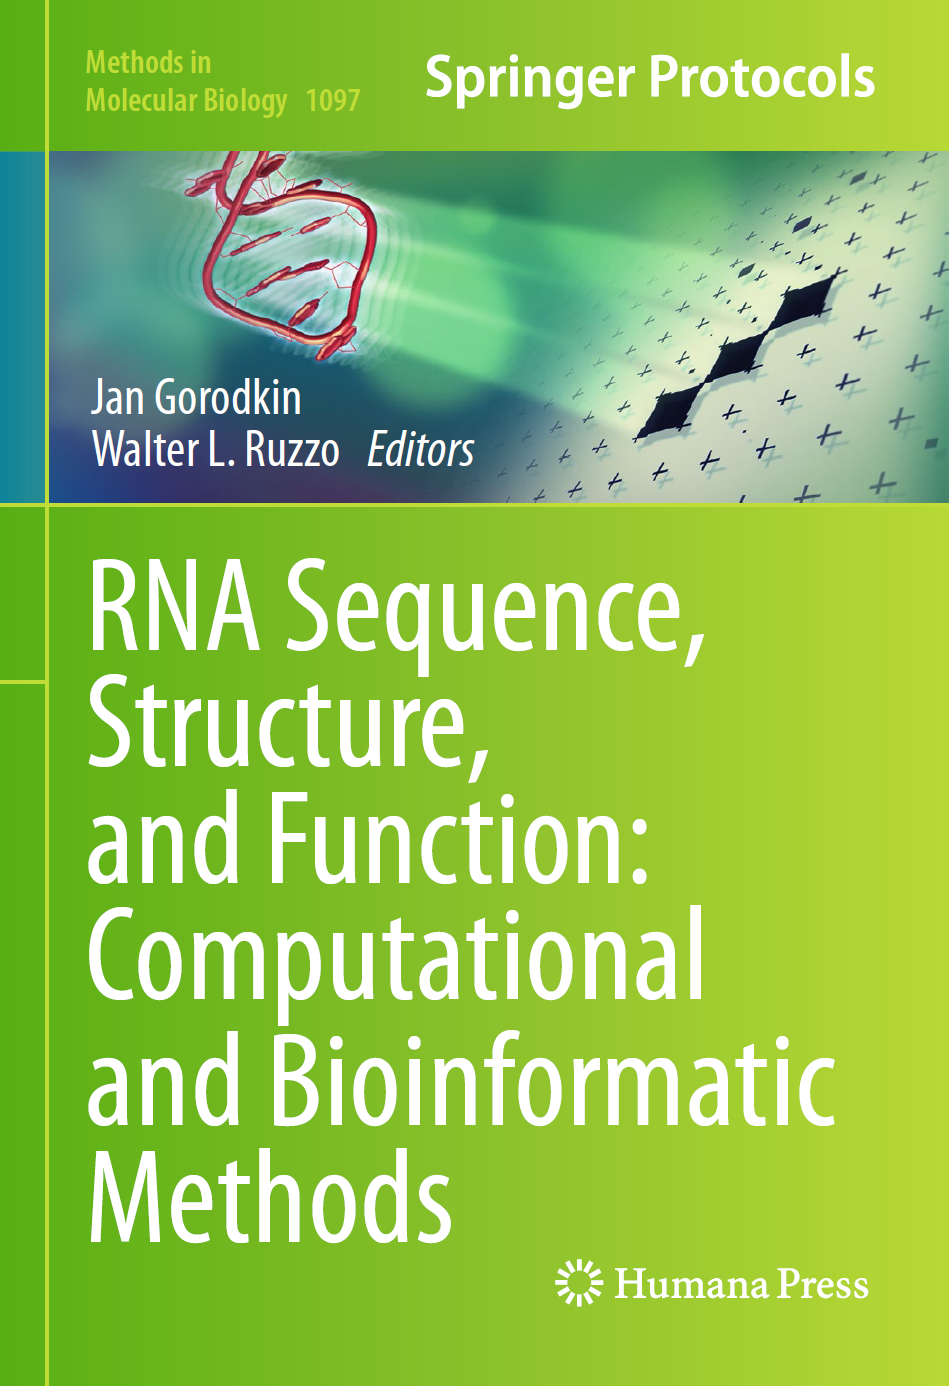 rna book frontpage